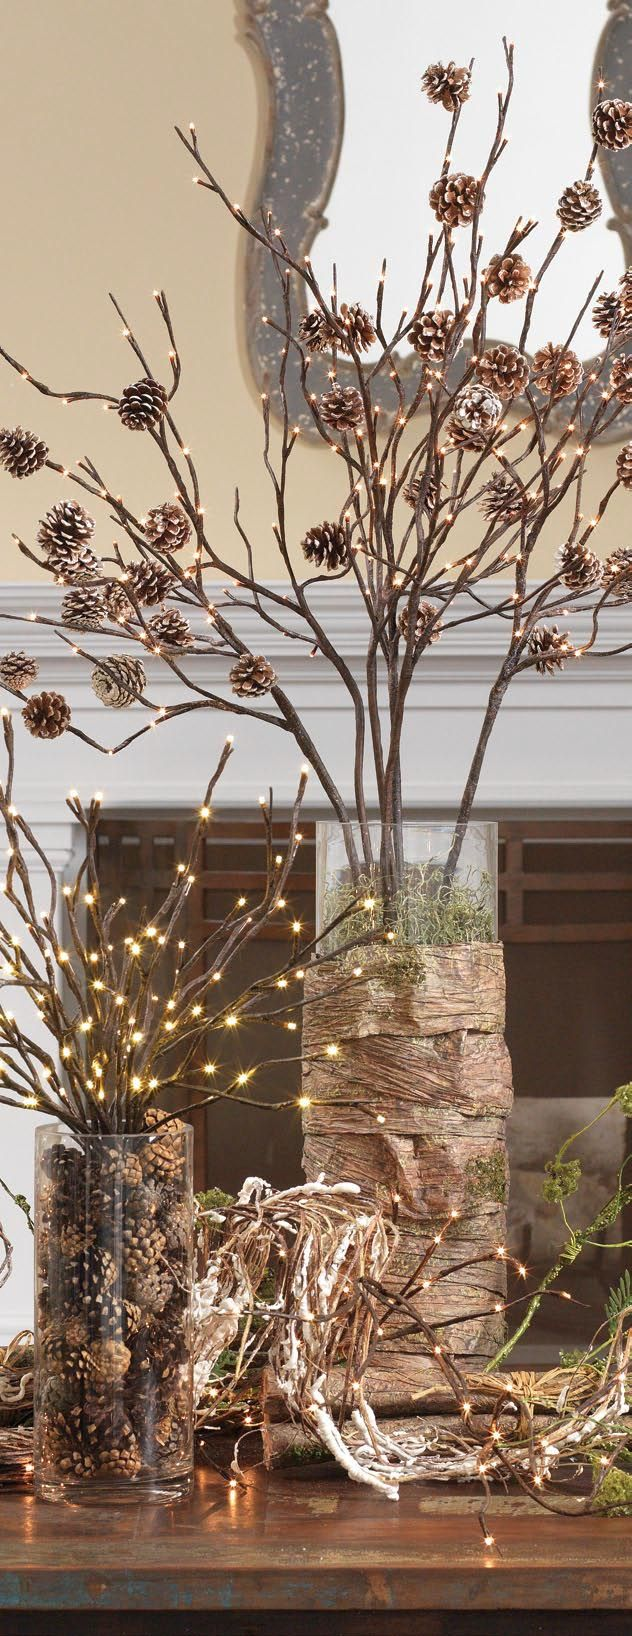 Natural resources. A rustic holiday scene created with lighted branches & pine cones...so simple and so memorable!